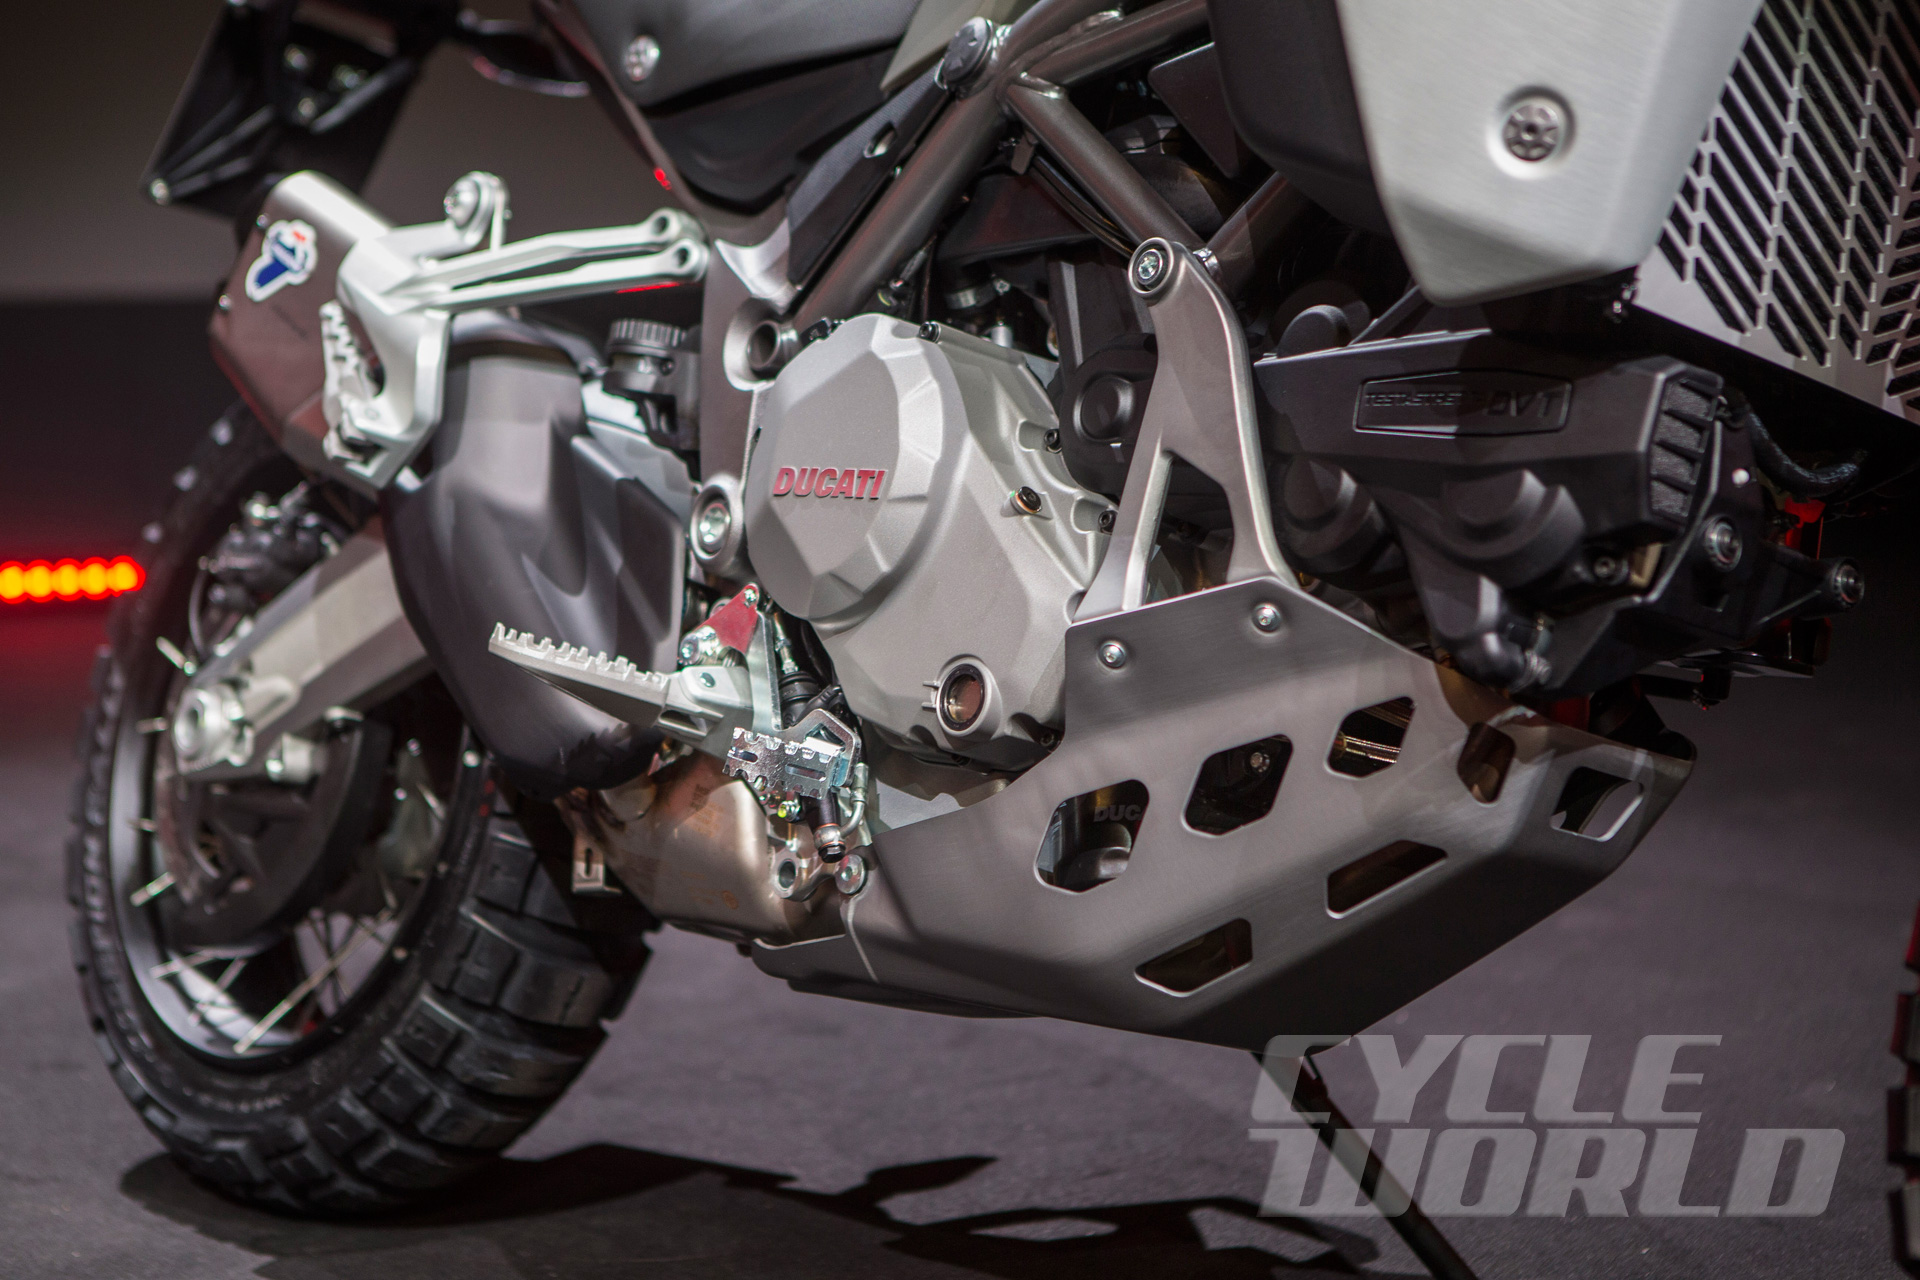 2016 multistrada enduro video and pictures - ducati.ms - the